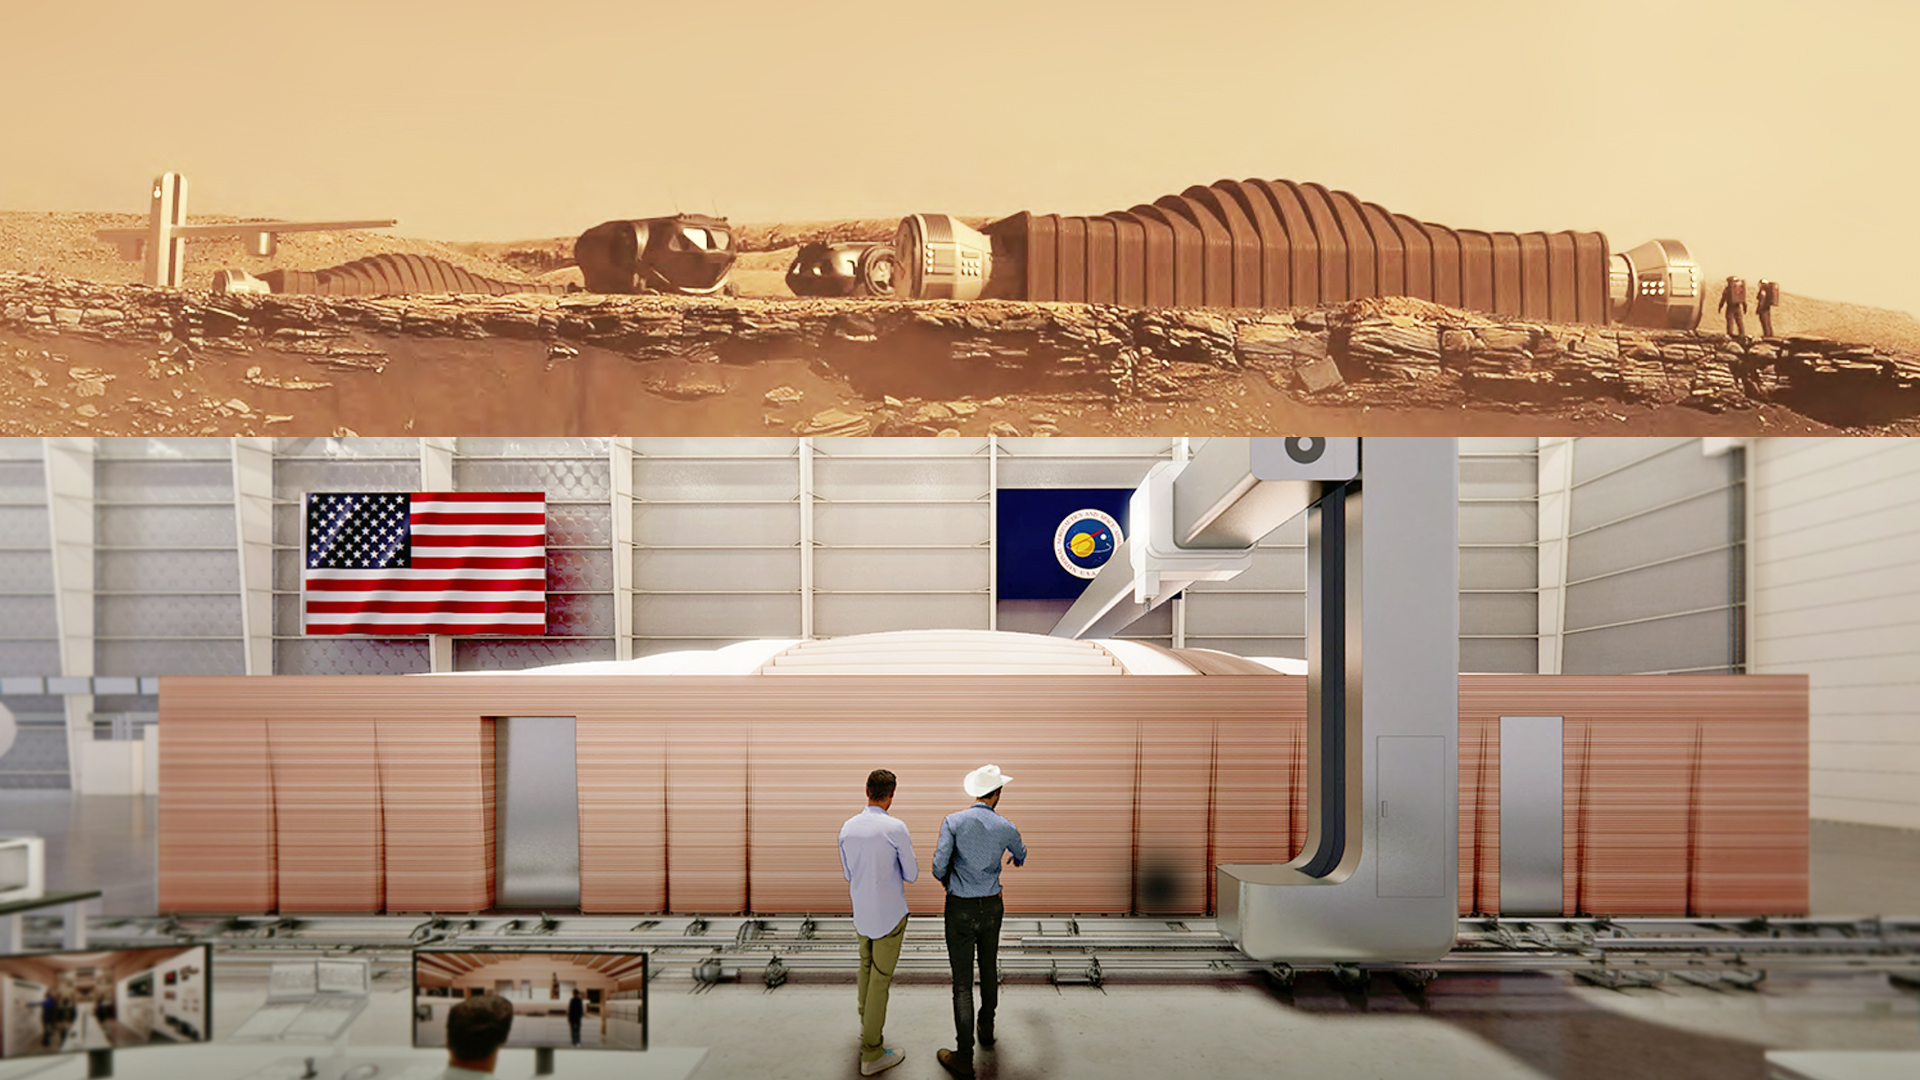 Video: Four people will spend a year living in this 3D-printed Mars habitat